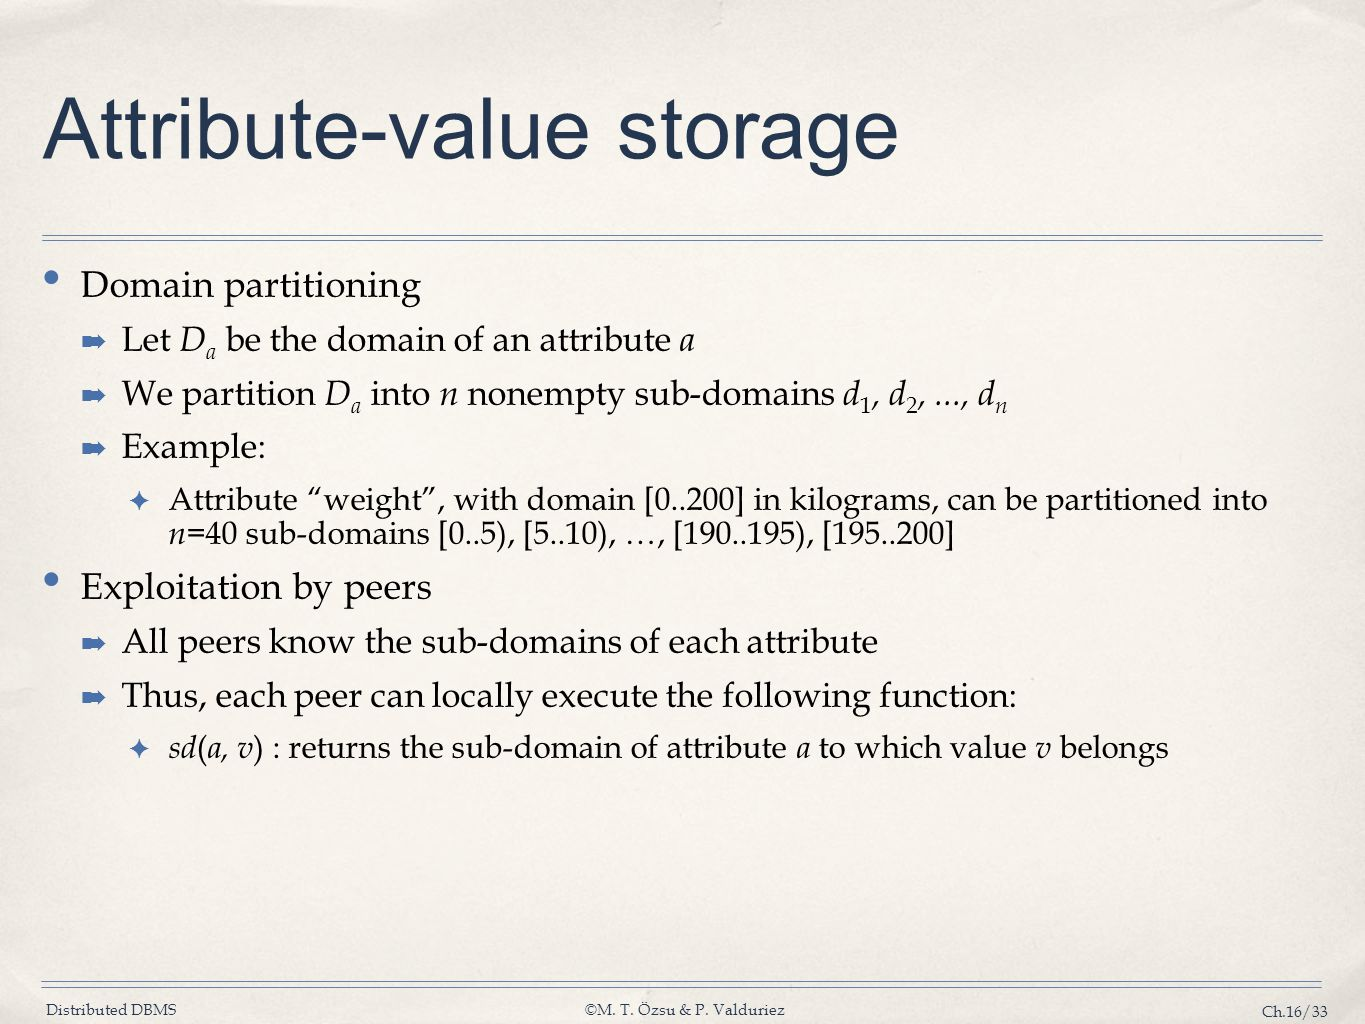 Distributed DBMS©M. T. Özsu & P. Valduriez Ch.16/33 Attribute-value storage Domain partitioning ➡ Let D a be the domain of an attribute a ➡ We partiti